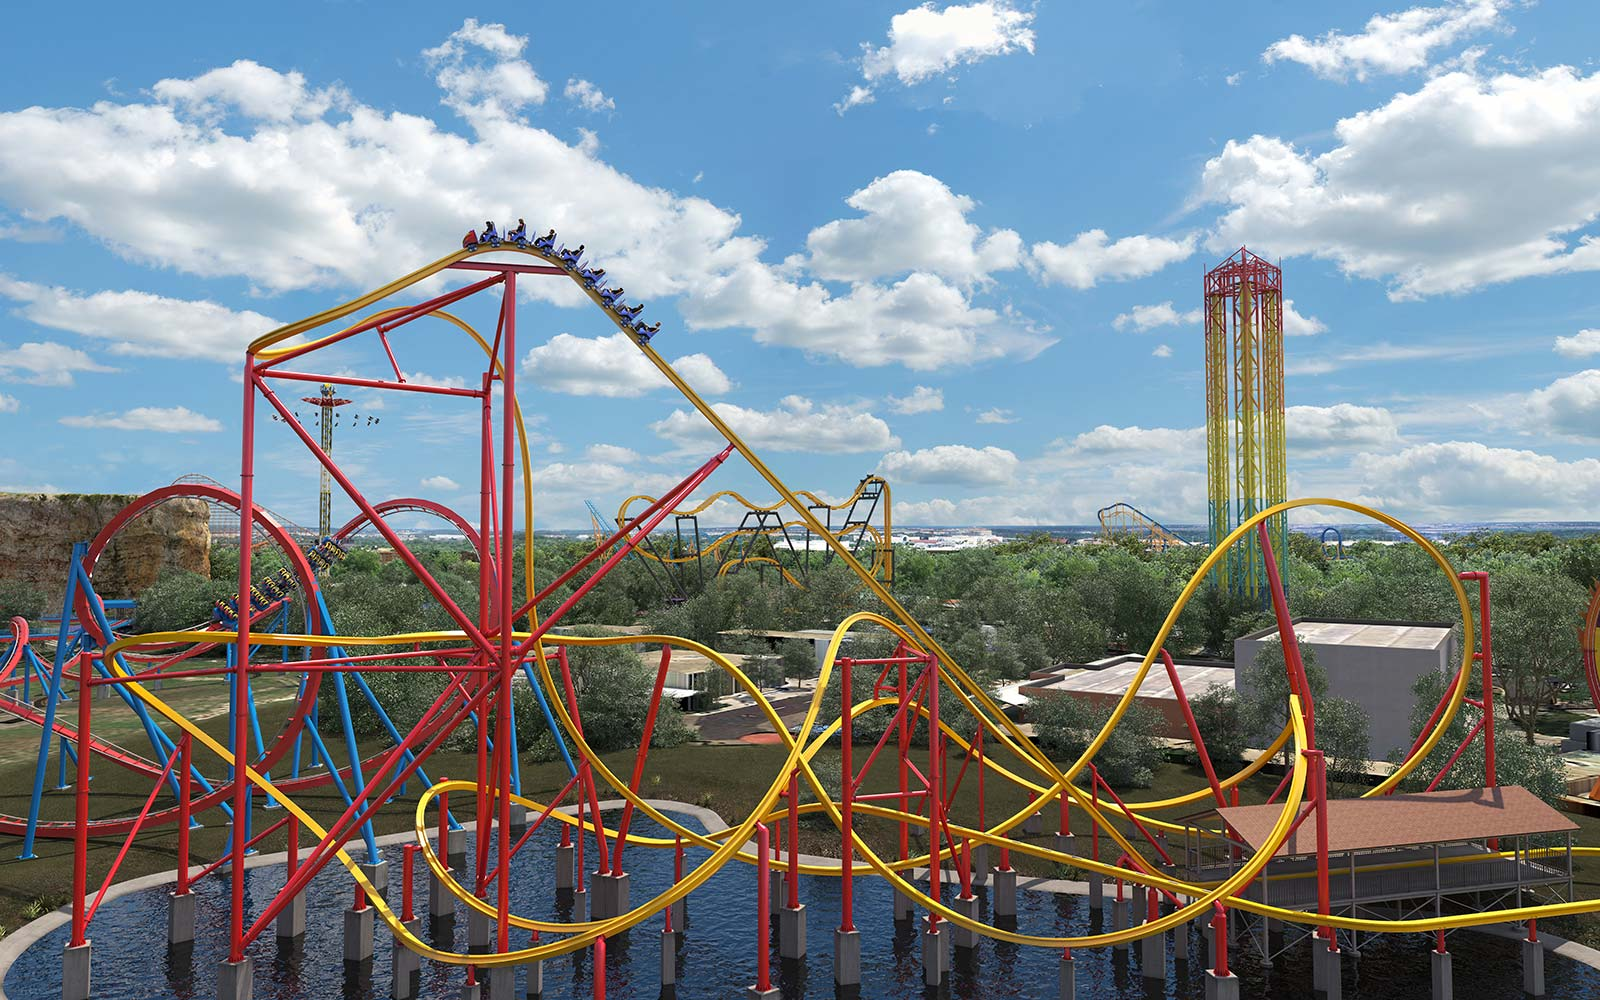 Six Flags to debut 'Wonder Woman' roller coaster in Texas